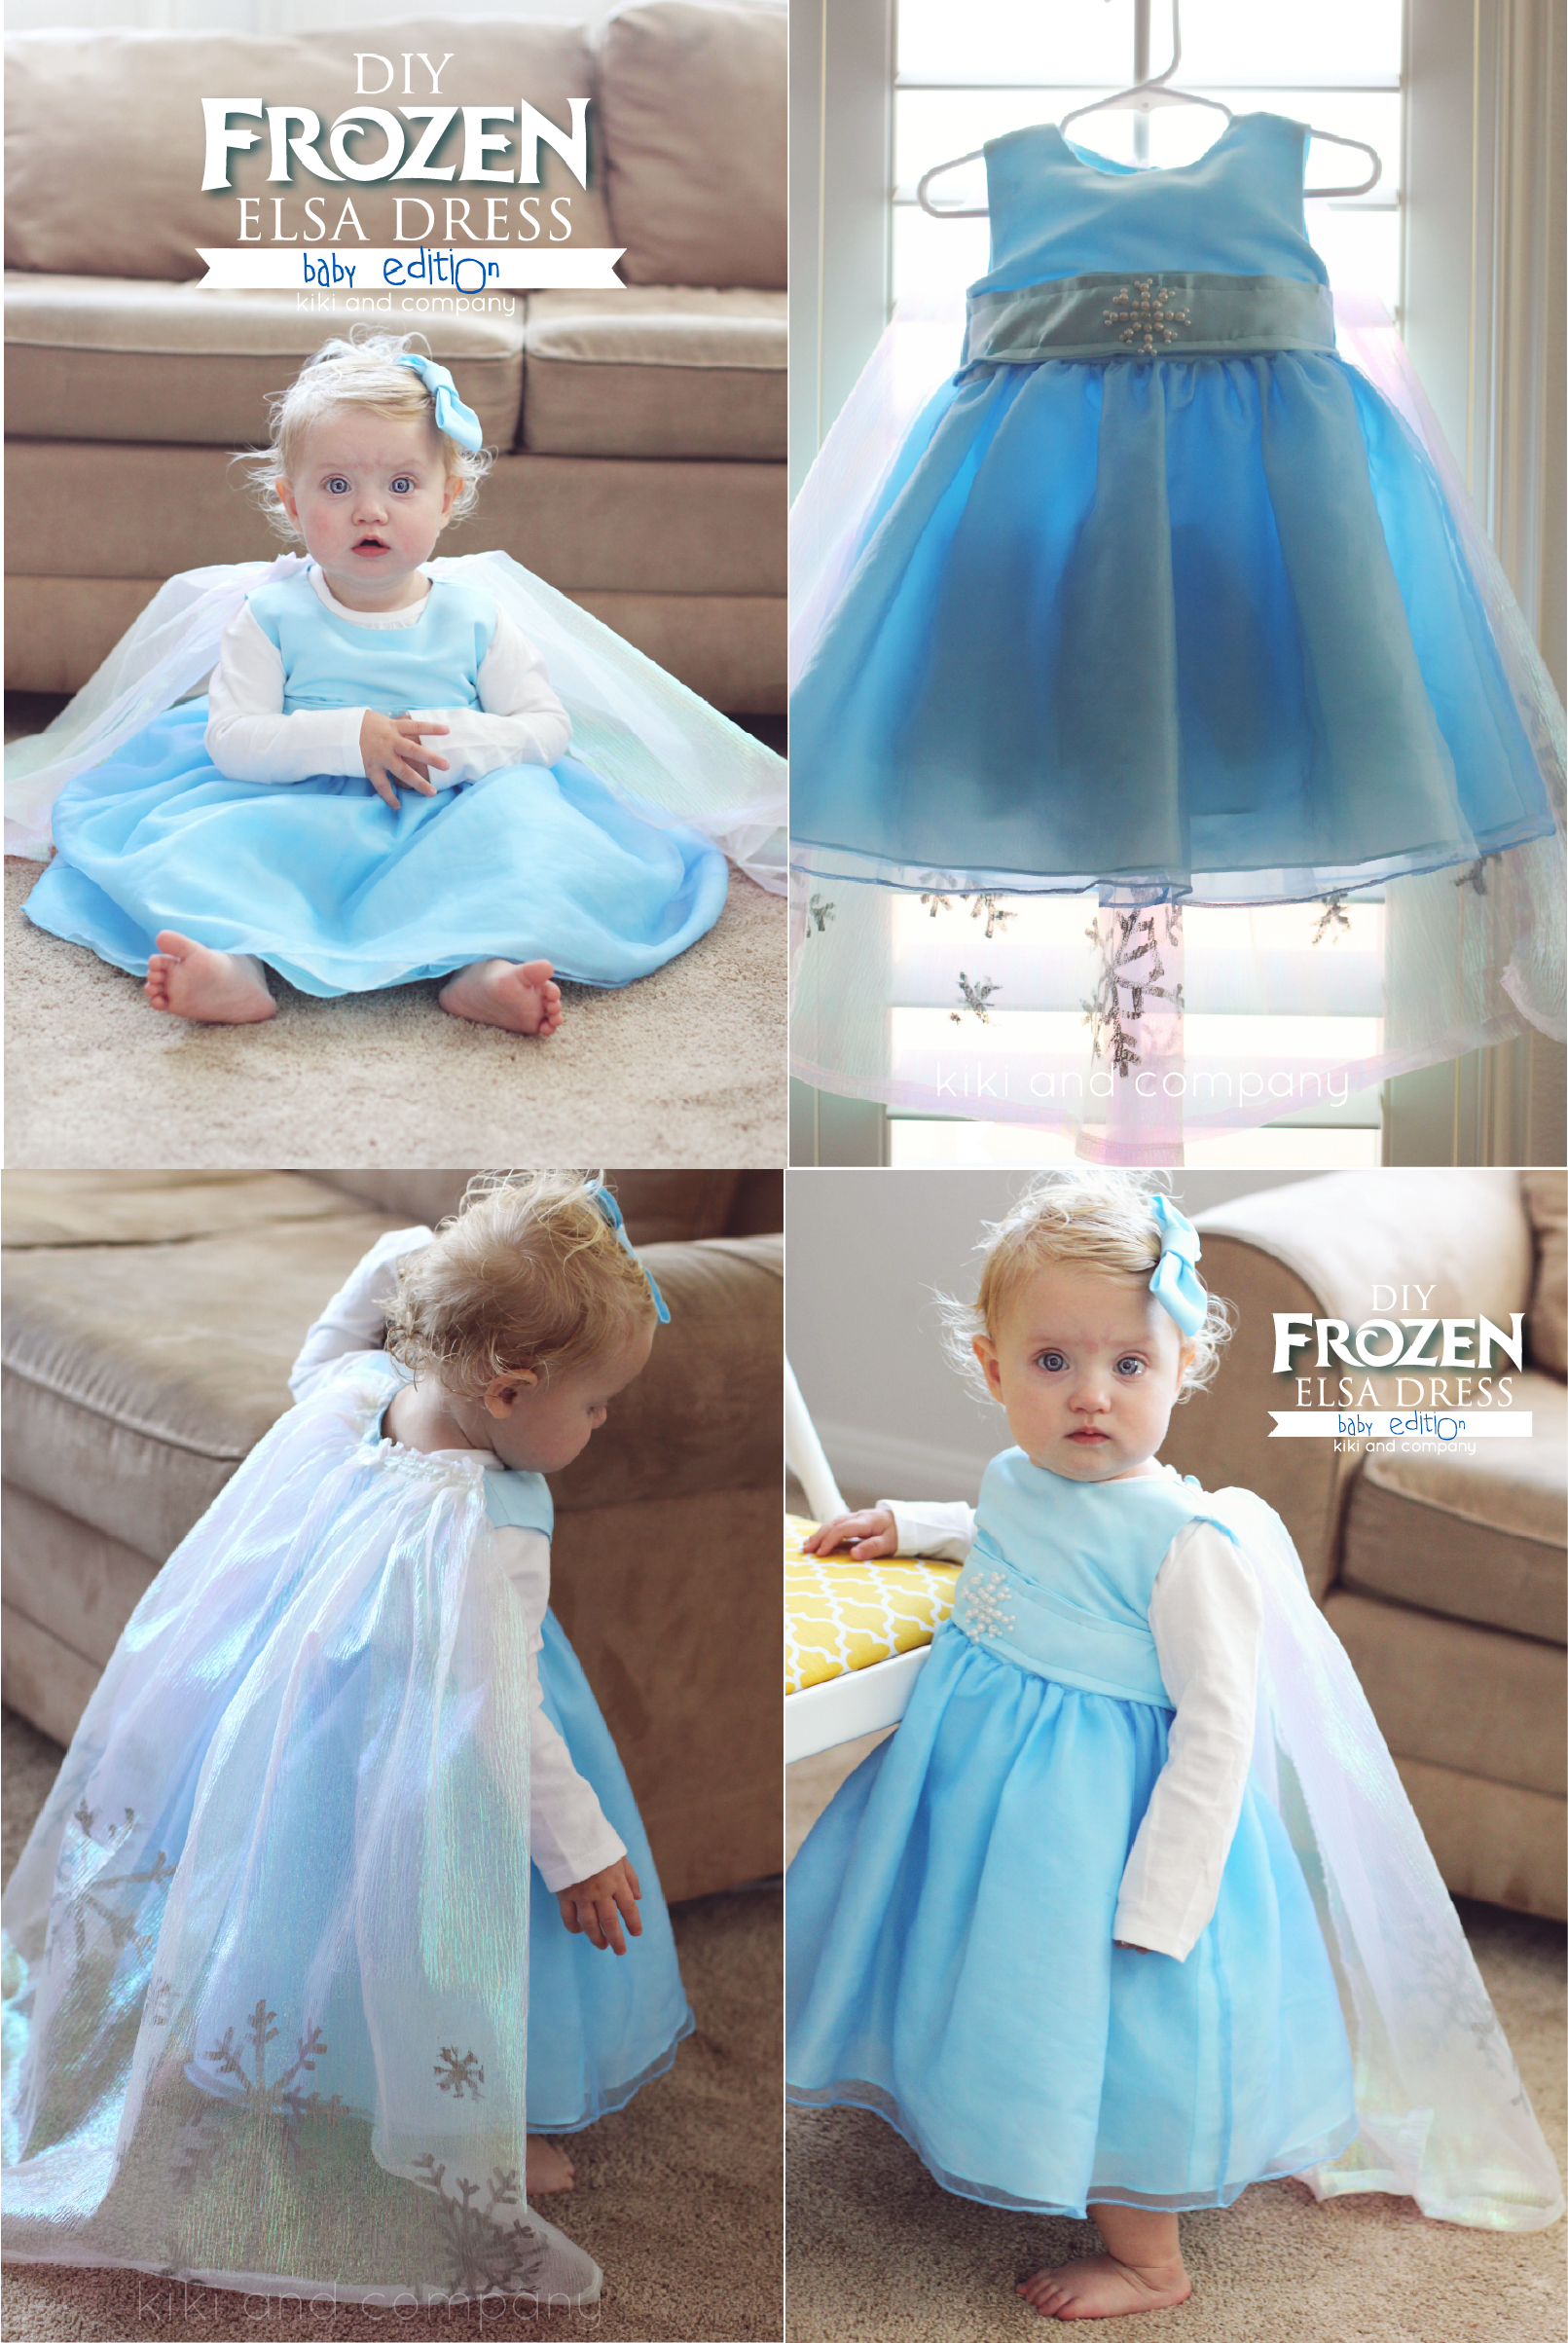 DIY Frozen Baby Elsa Dress. Perfect for your littlest princess ...